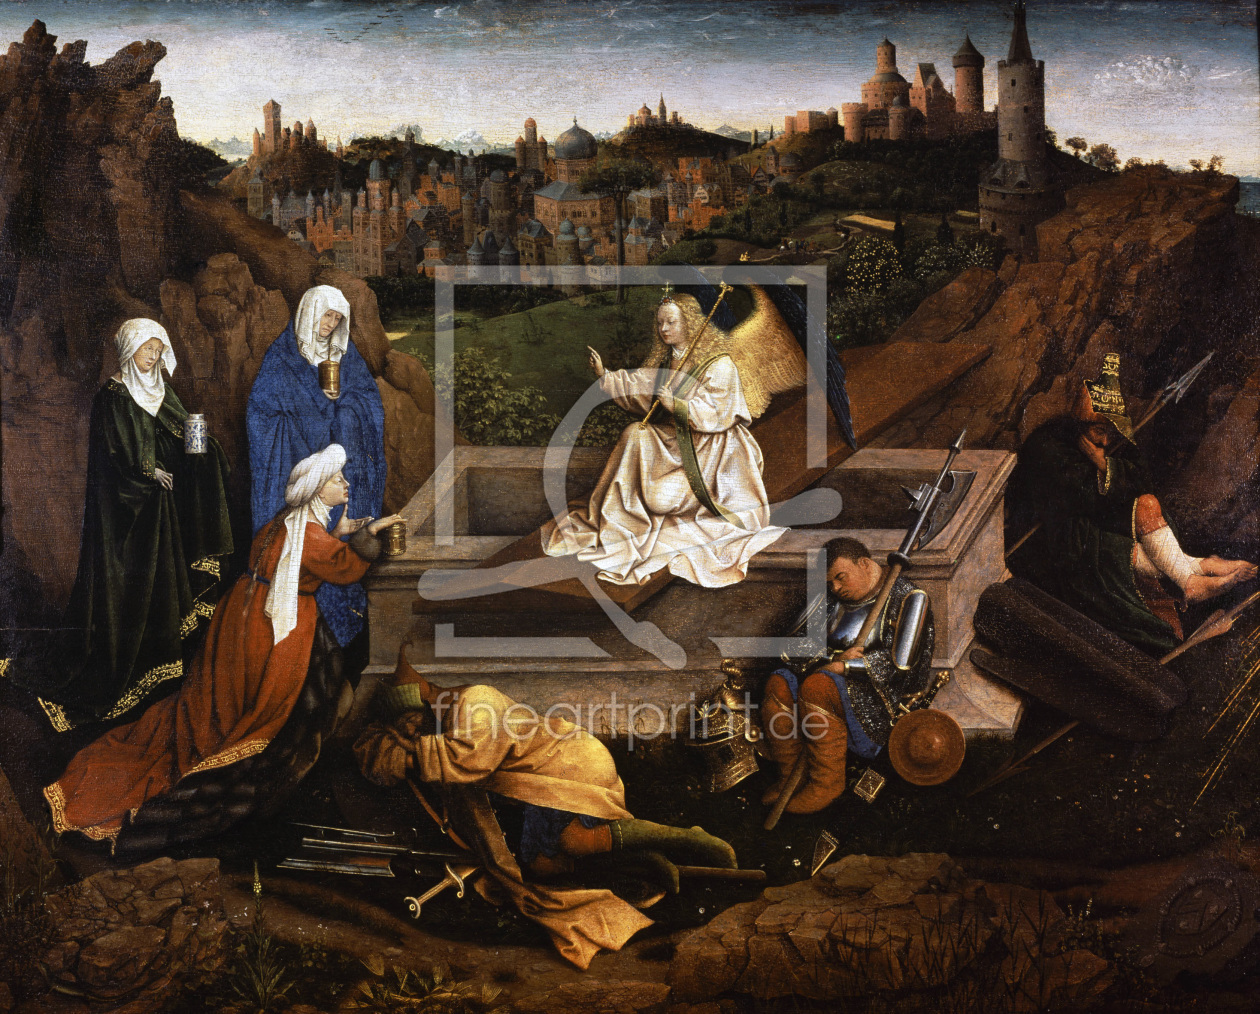 Bild-Nr.: 30002600 Three Maries at the Grave / van Eyck erstellt von van Eyck, Hubert & Jan